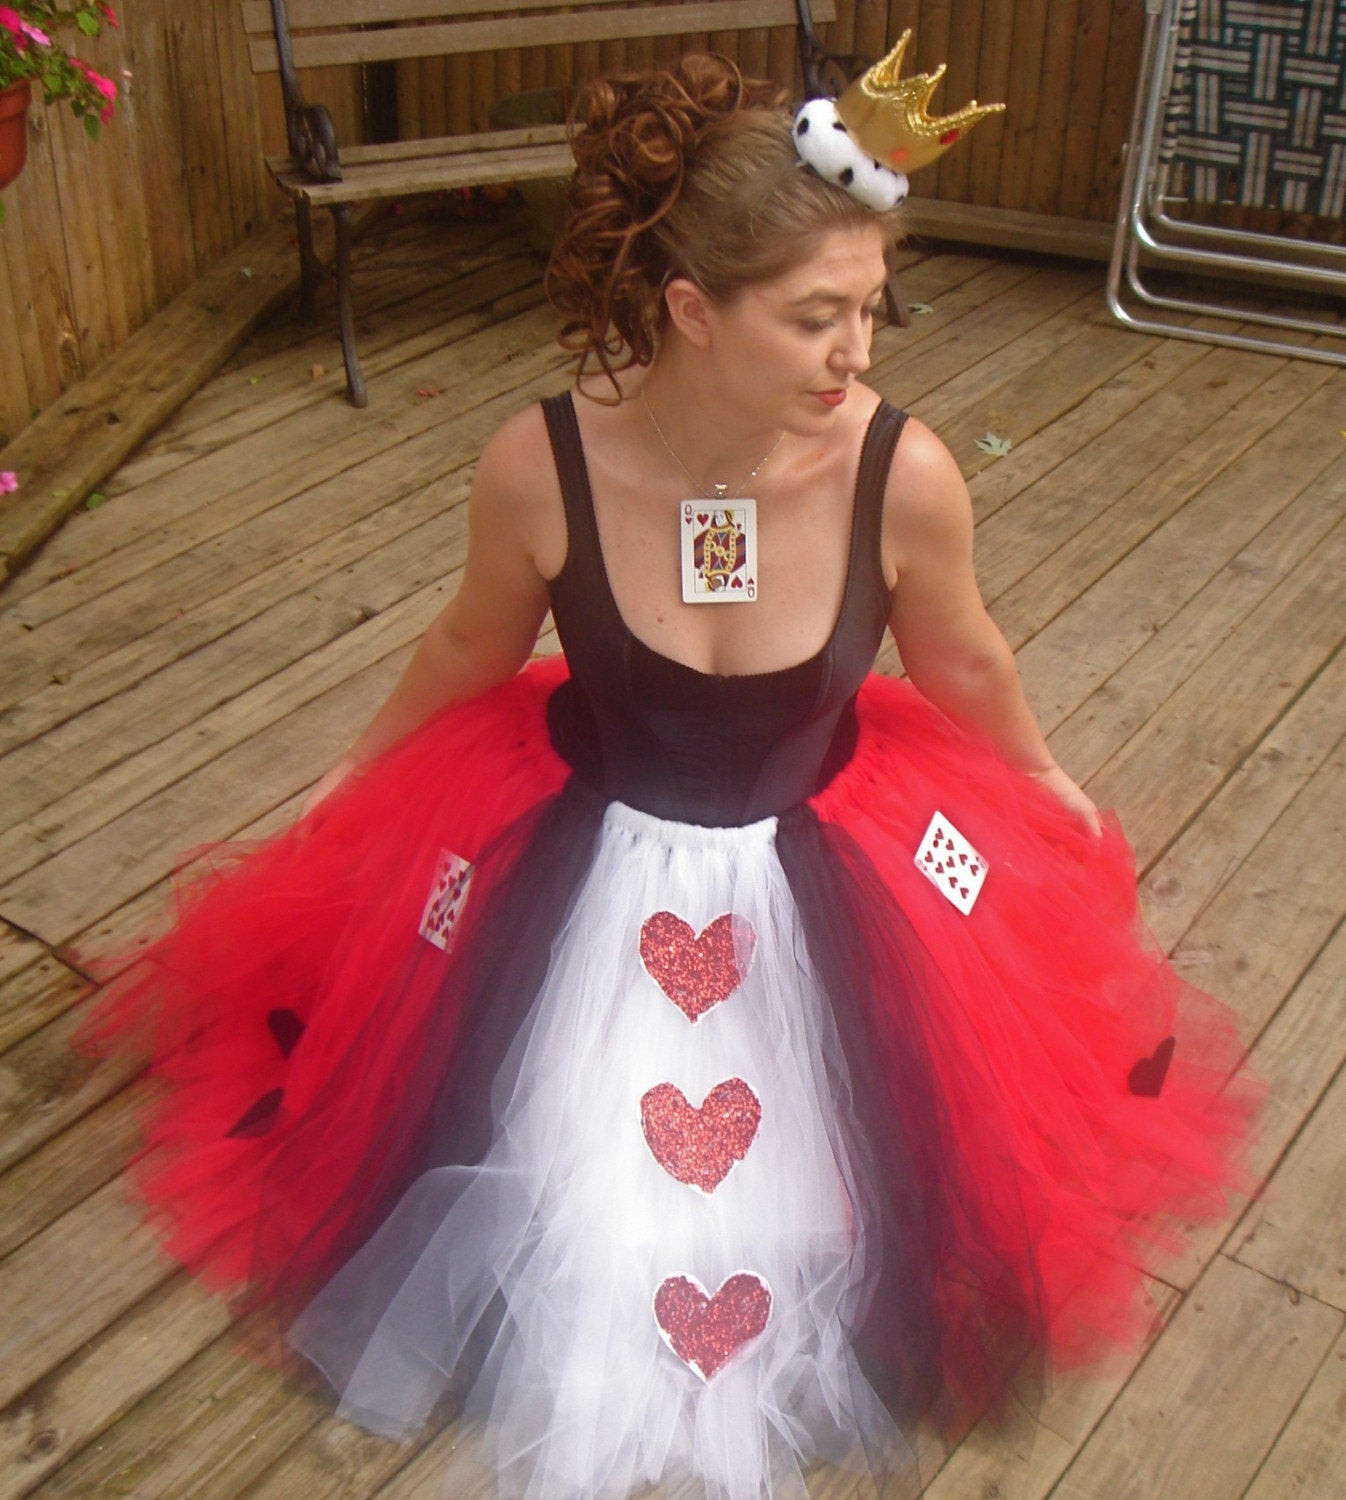 Best ideas about DIY Queen Of Hearts Costume . Save or Pin Queen of Hearts Adult Boutique Tutu Skirt Costume Now.